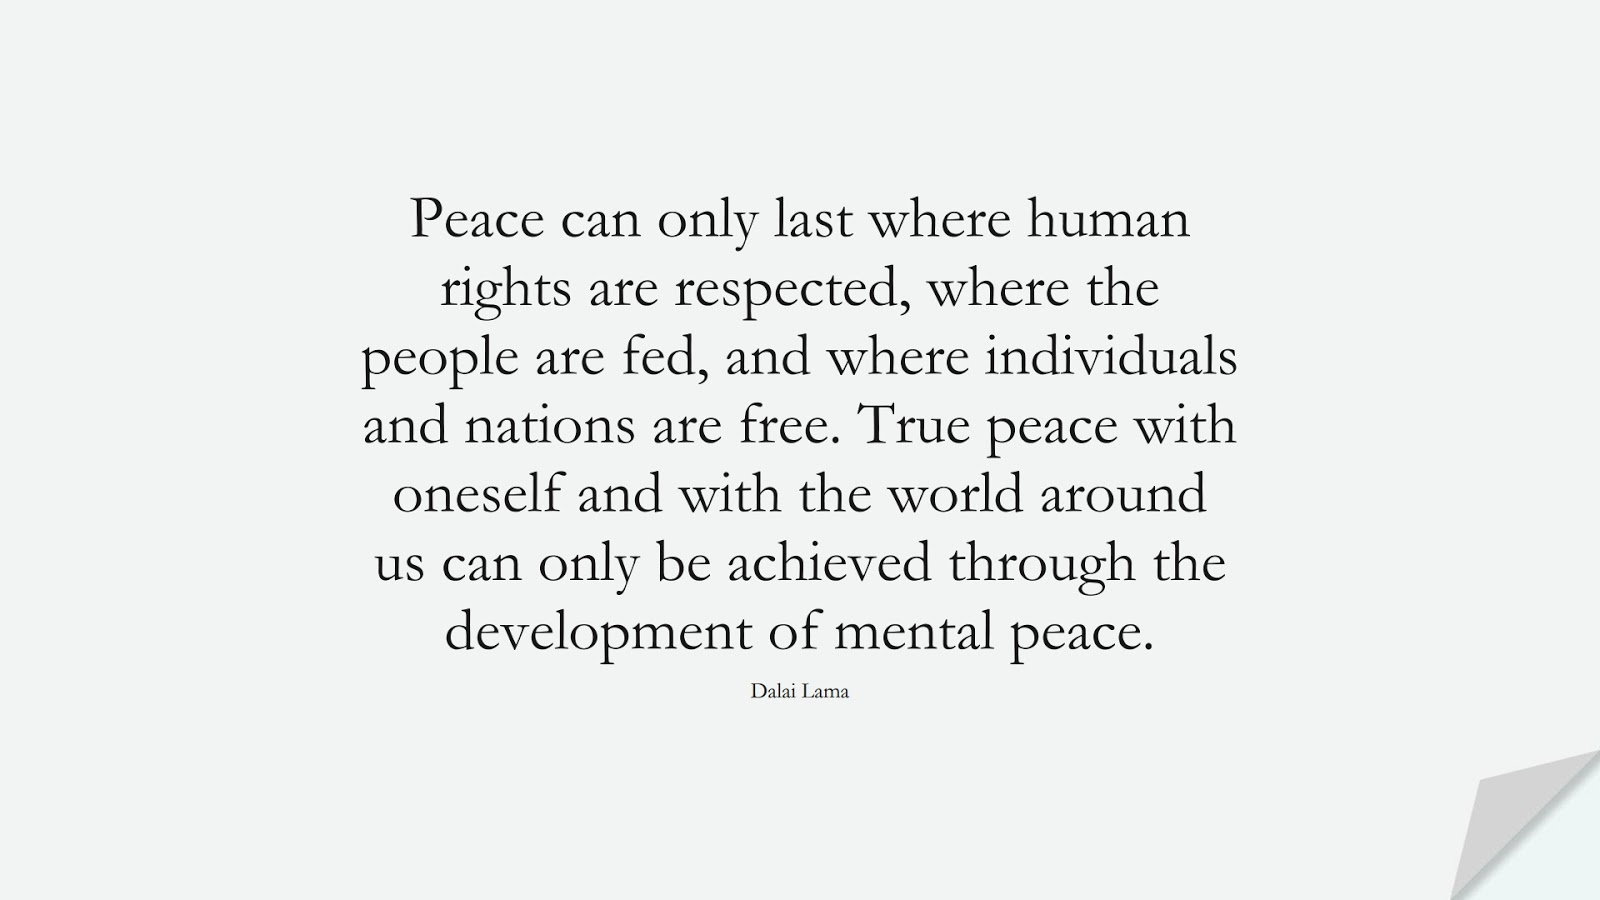 Peace can only last where human rights are respected, where the people are fed, and where individuals and nations are free. True peace with oneself and with the world around us can only be achieved through the development of mental peace. (Dalai Lama);  #HumanityQuotes